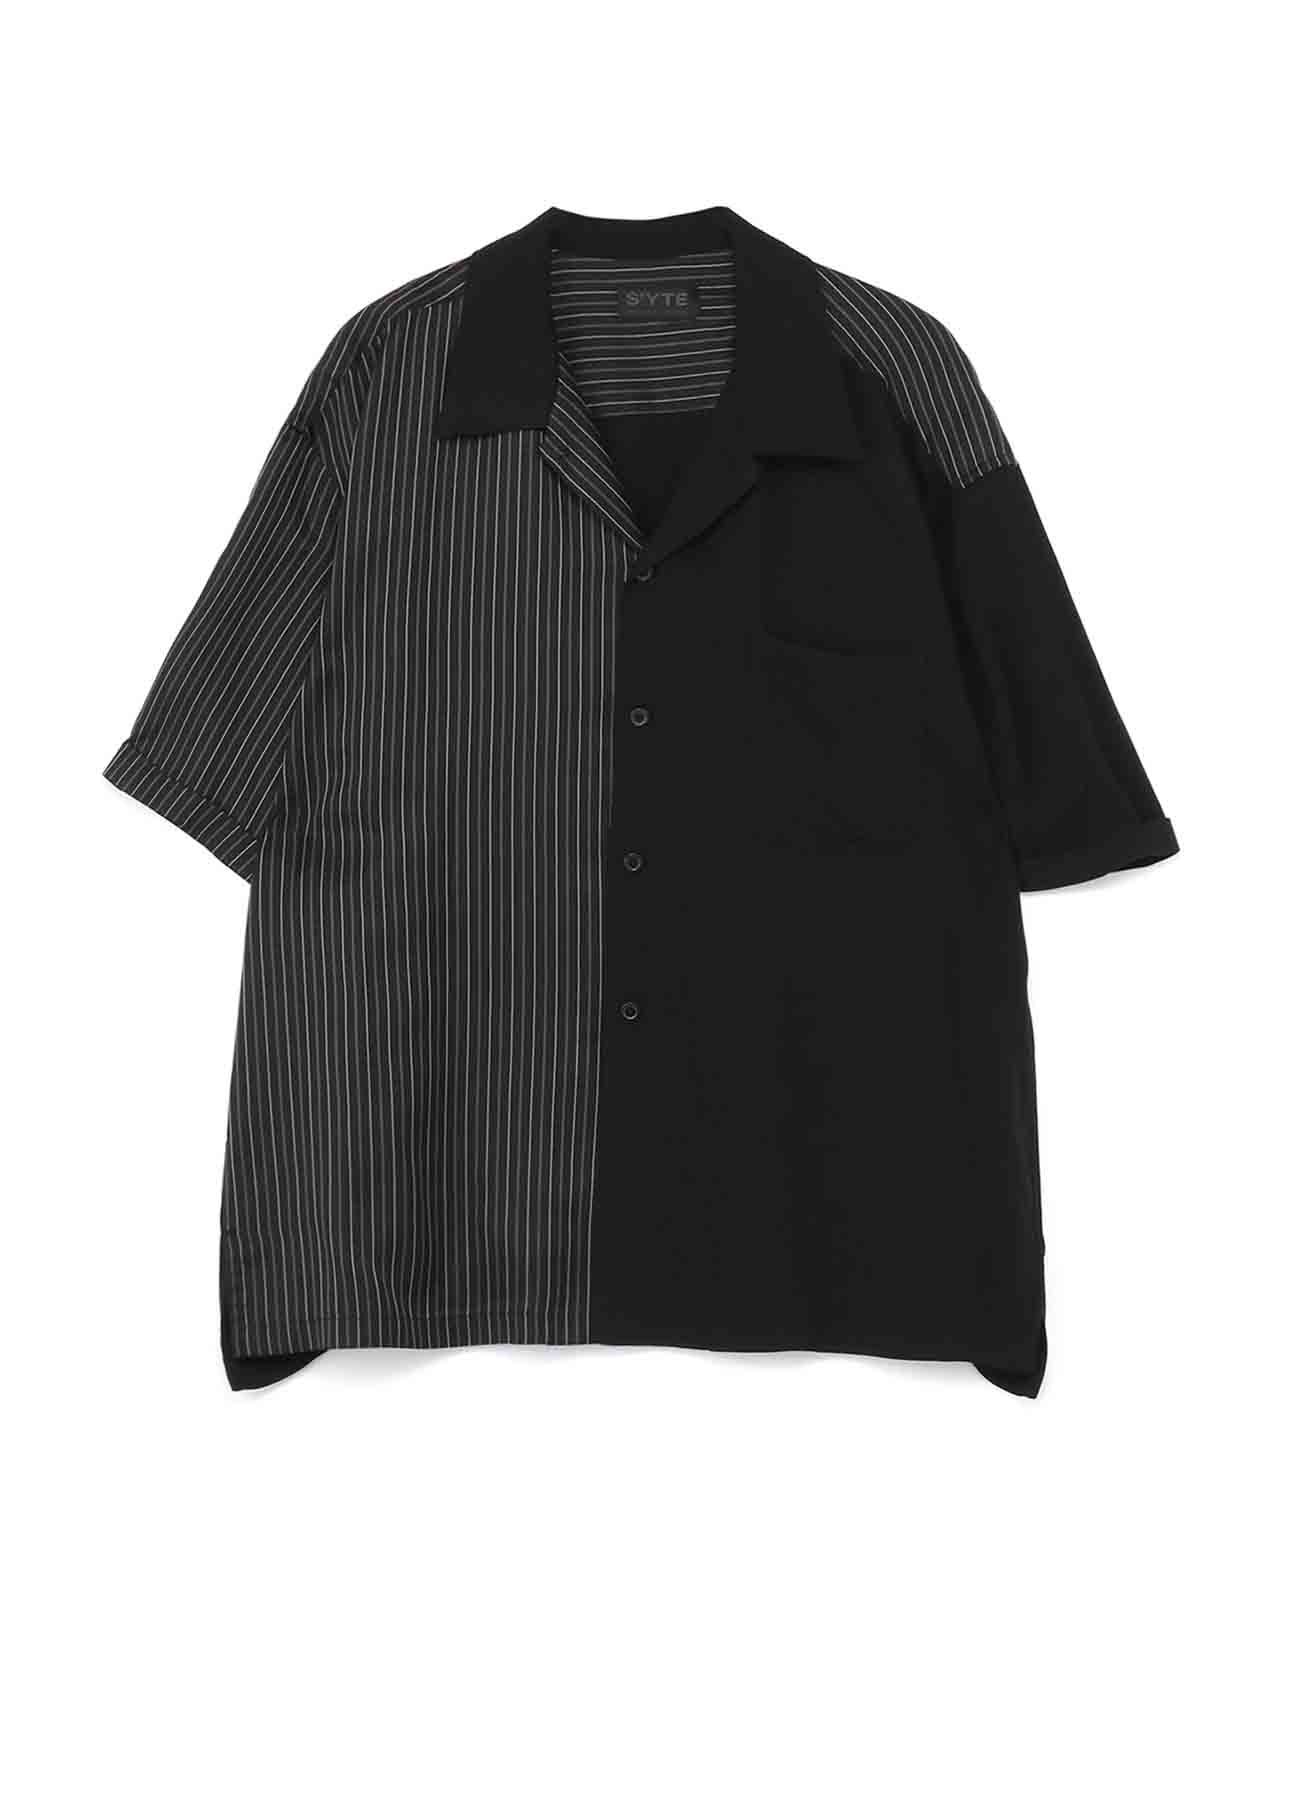 60s Ry/Span Twill Washer/Cupra Stripe Big Short Sleeve Shirt